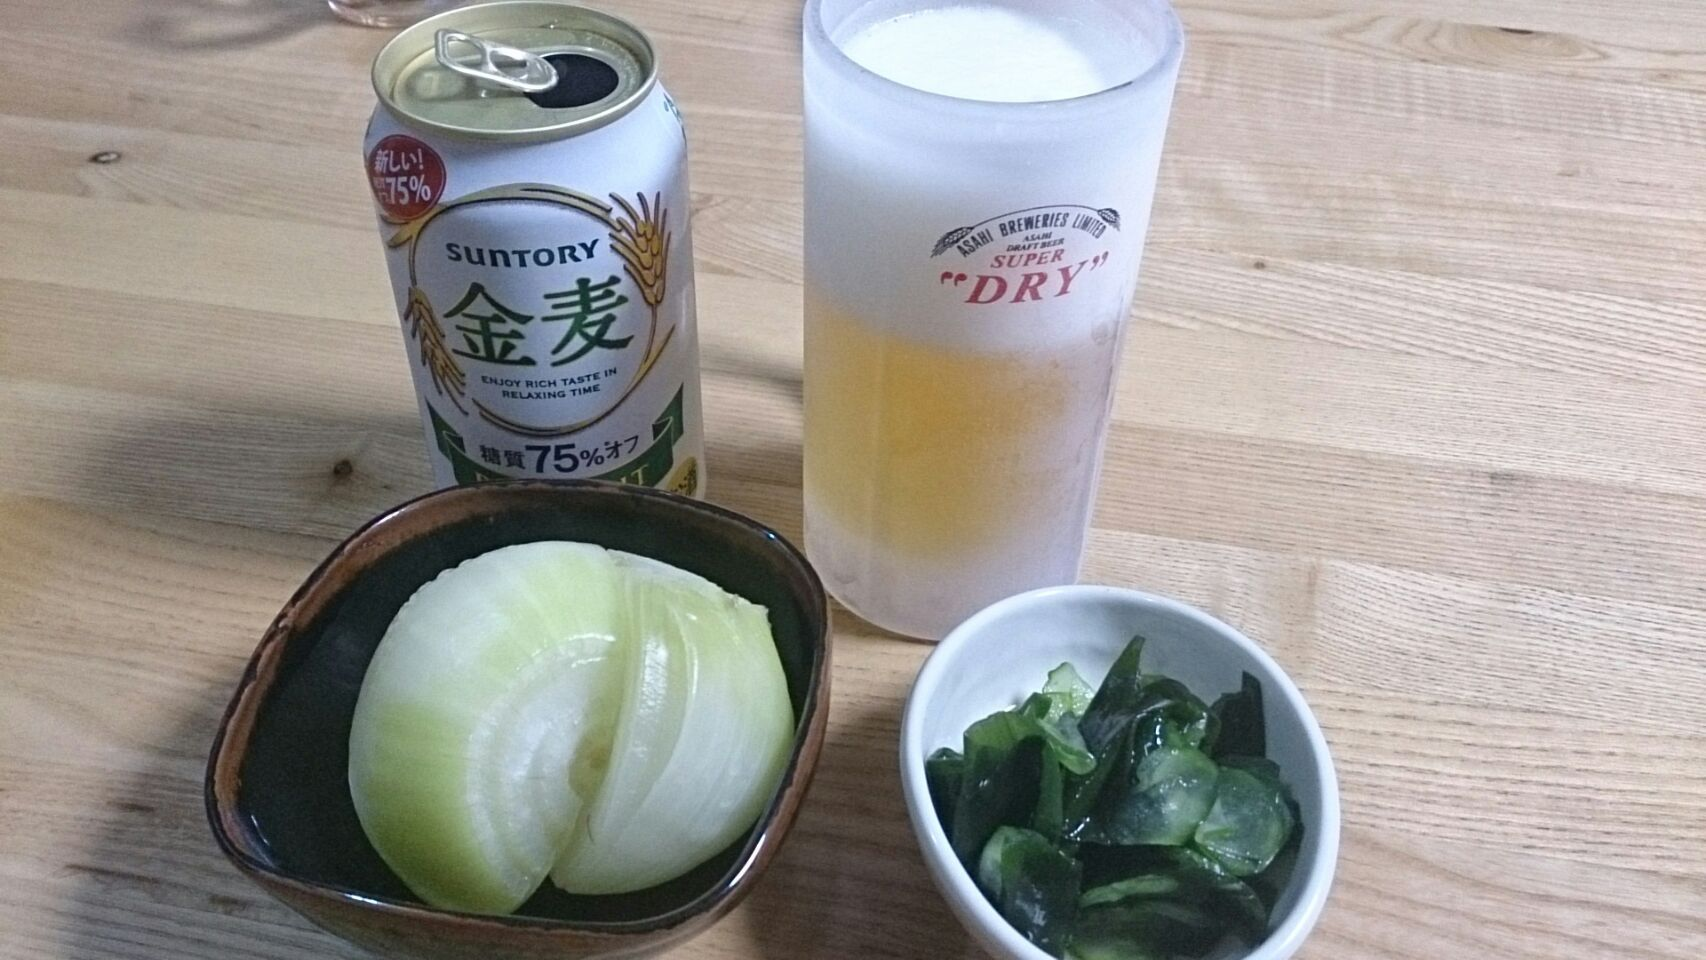 11/23 healthy dinner #TOEIC #healthy #test